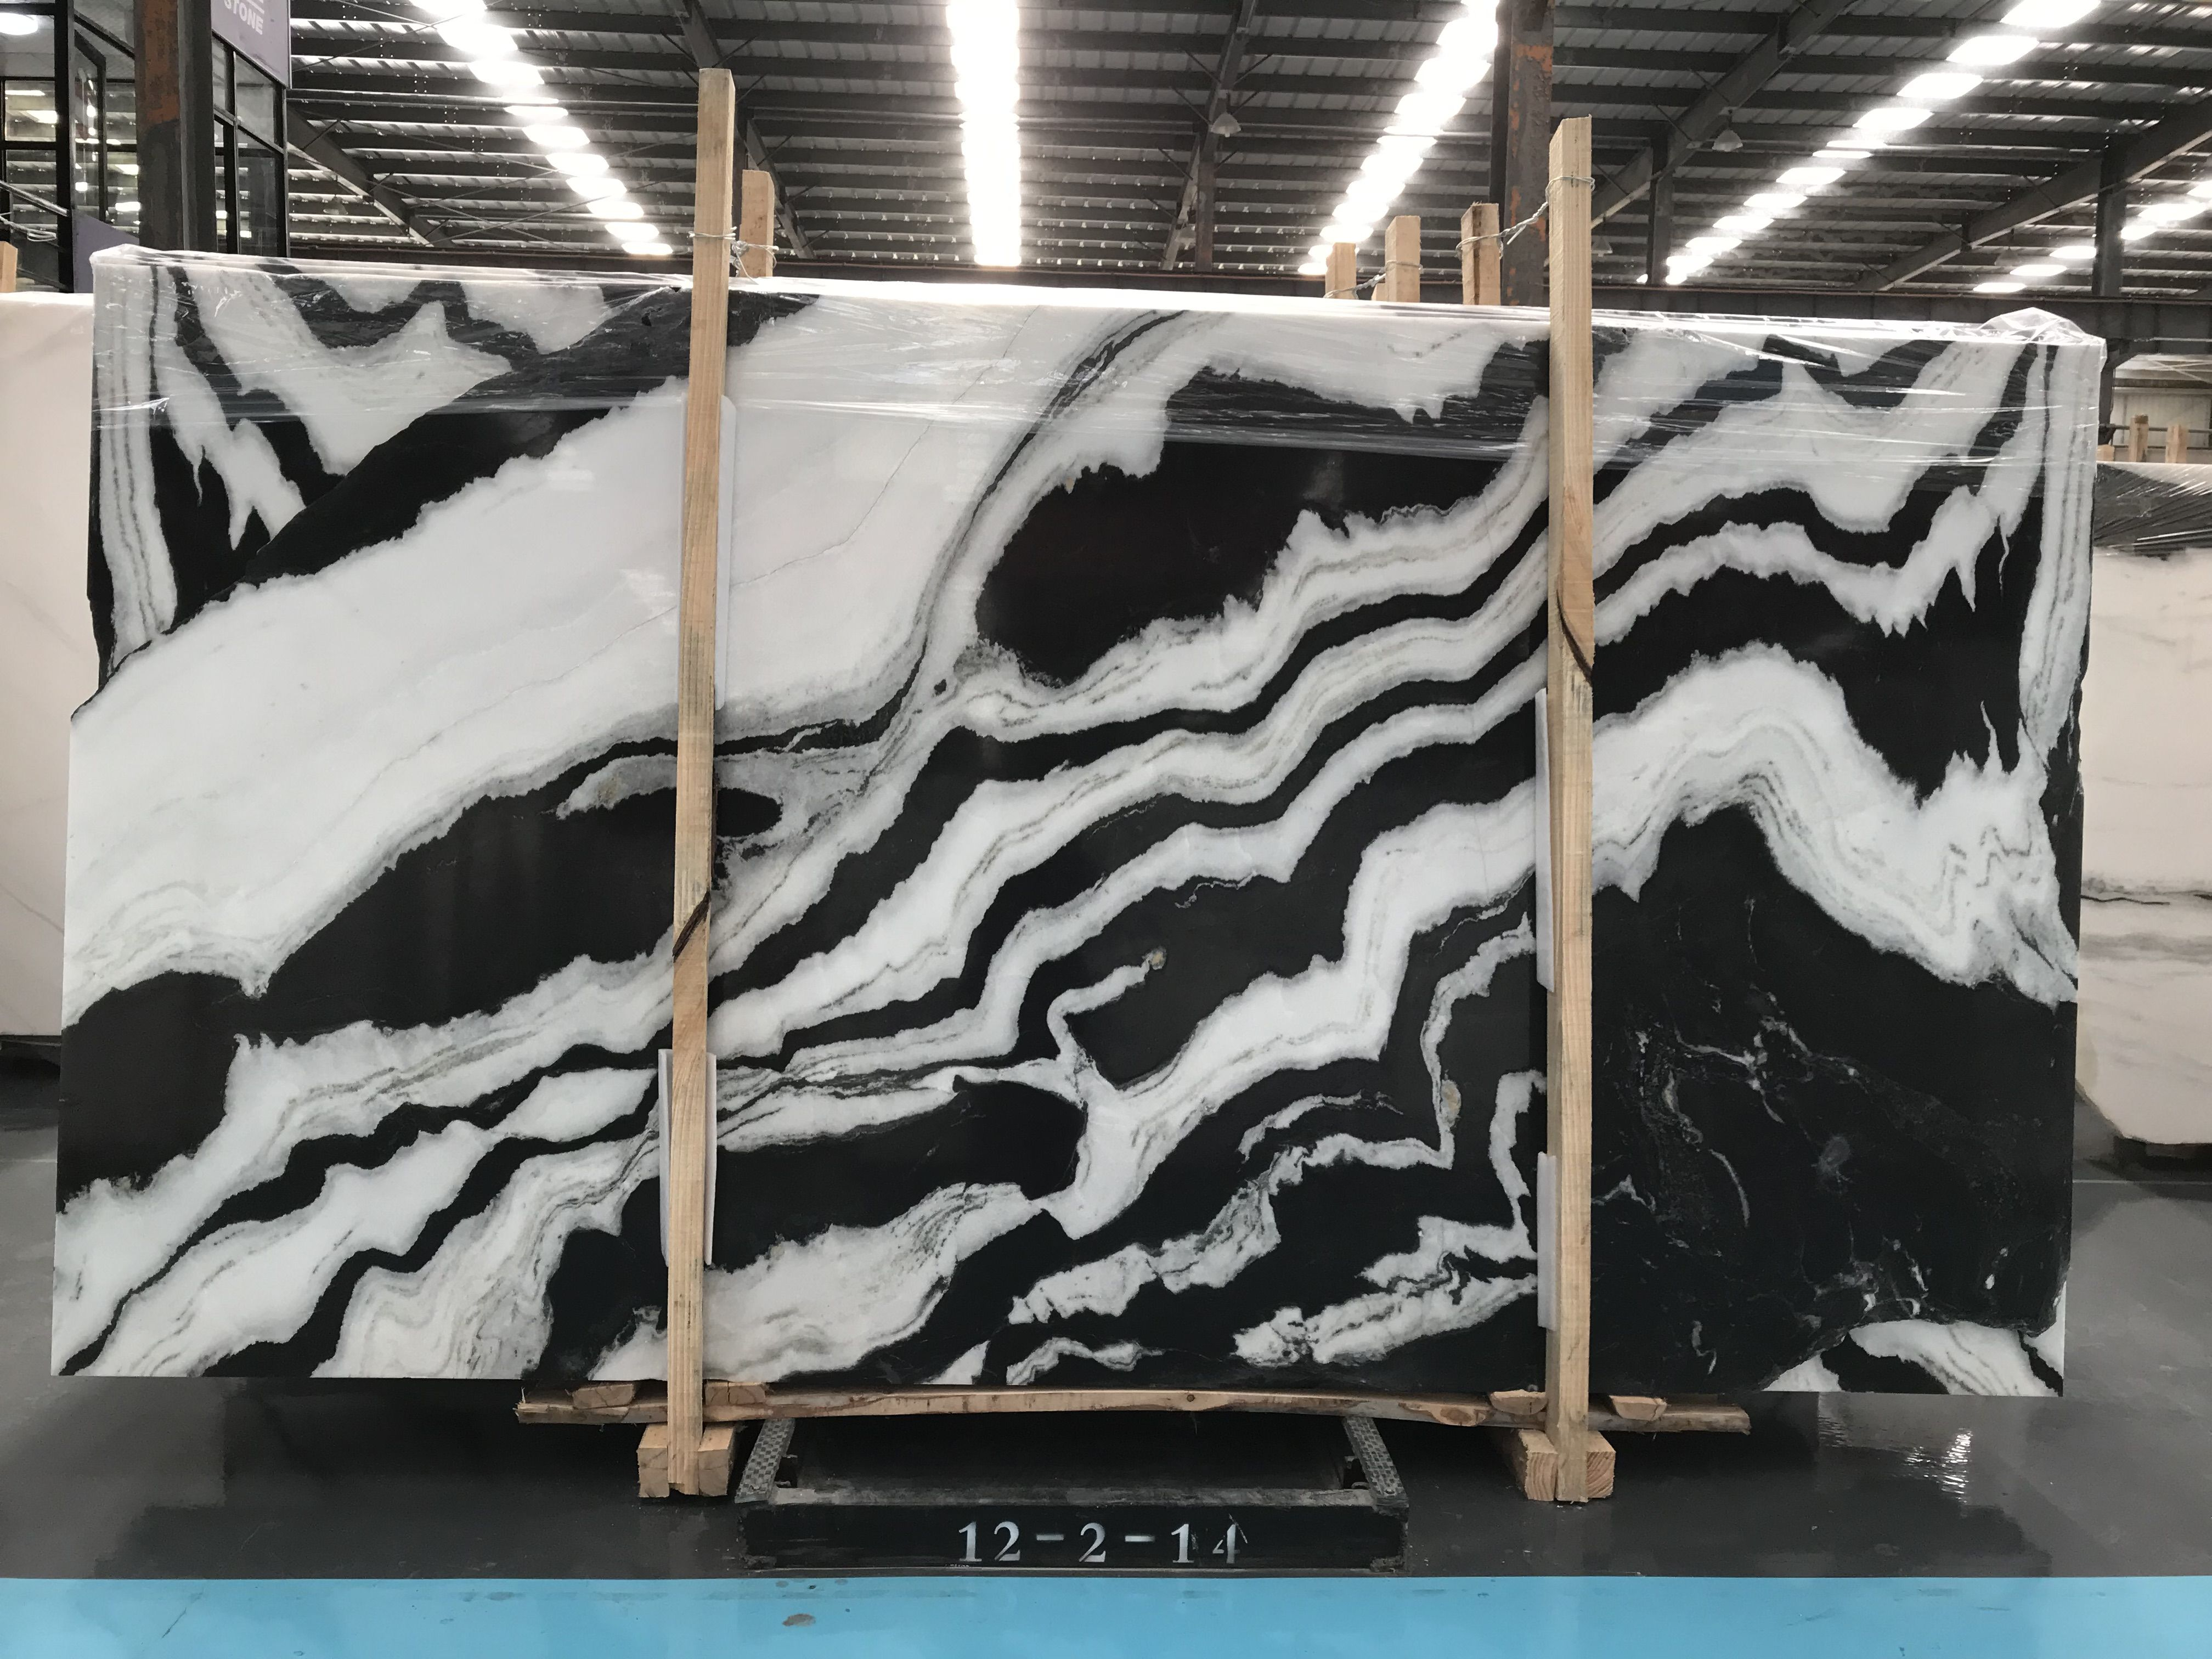 Panda White Marble Is Produced By Sunroad Stone China This Marble Is From China And Available On Stoneroad Cn Marble Slab White Marble Black And White Marble